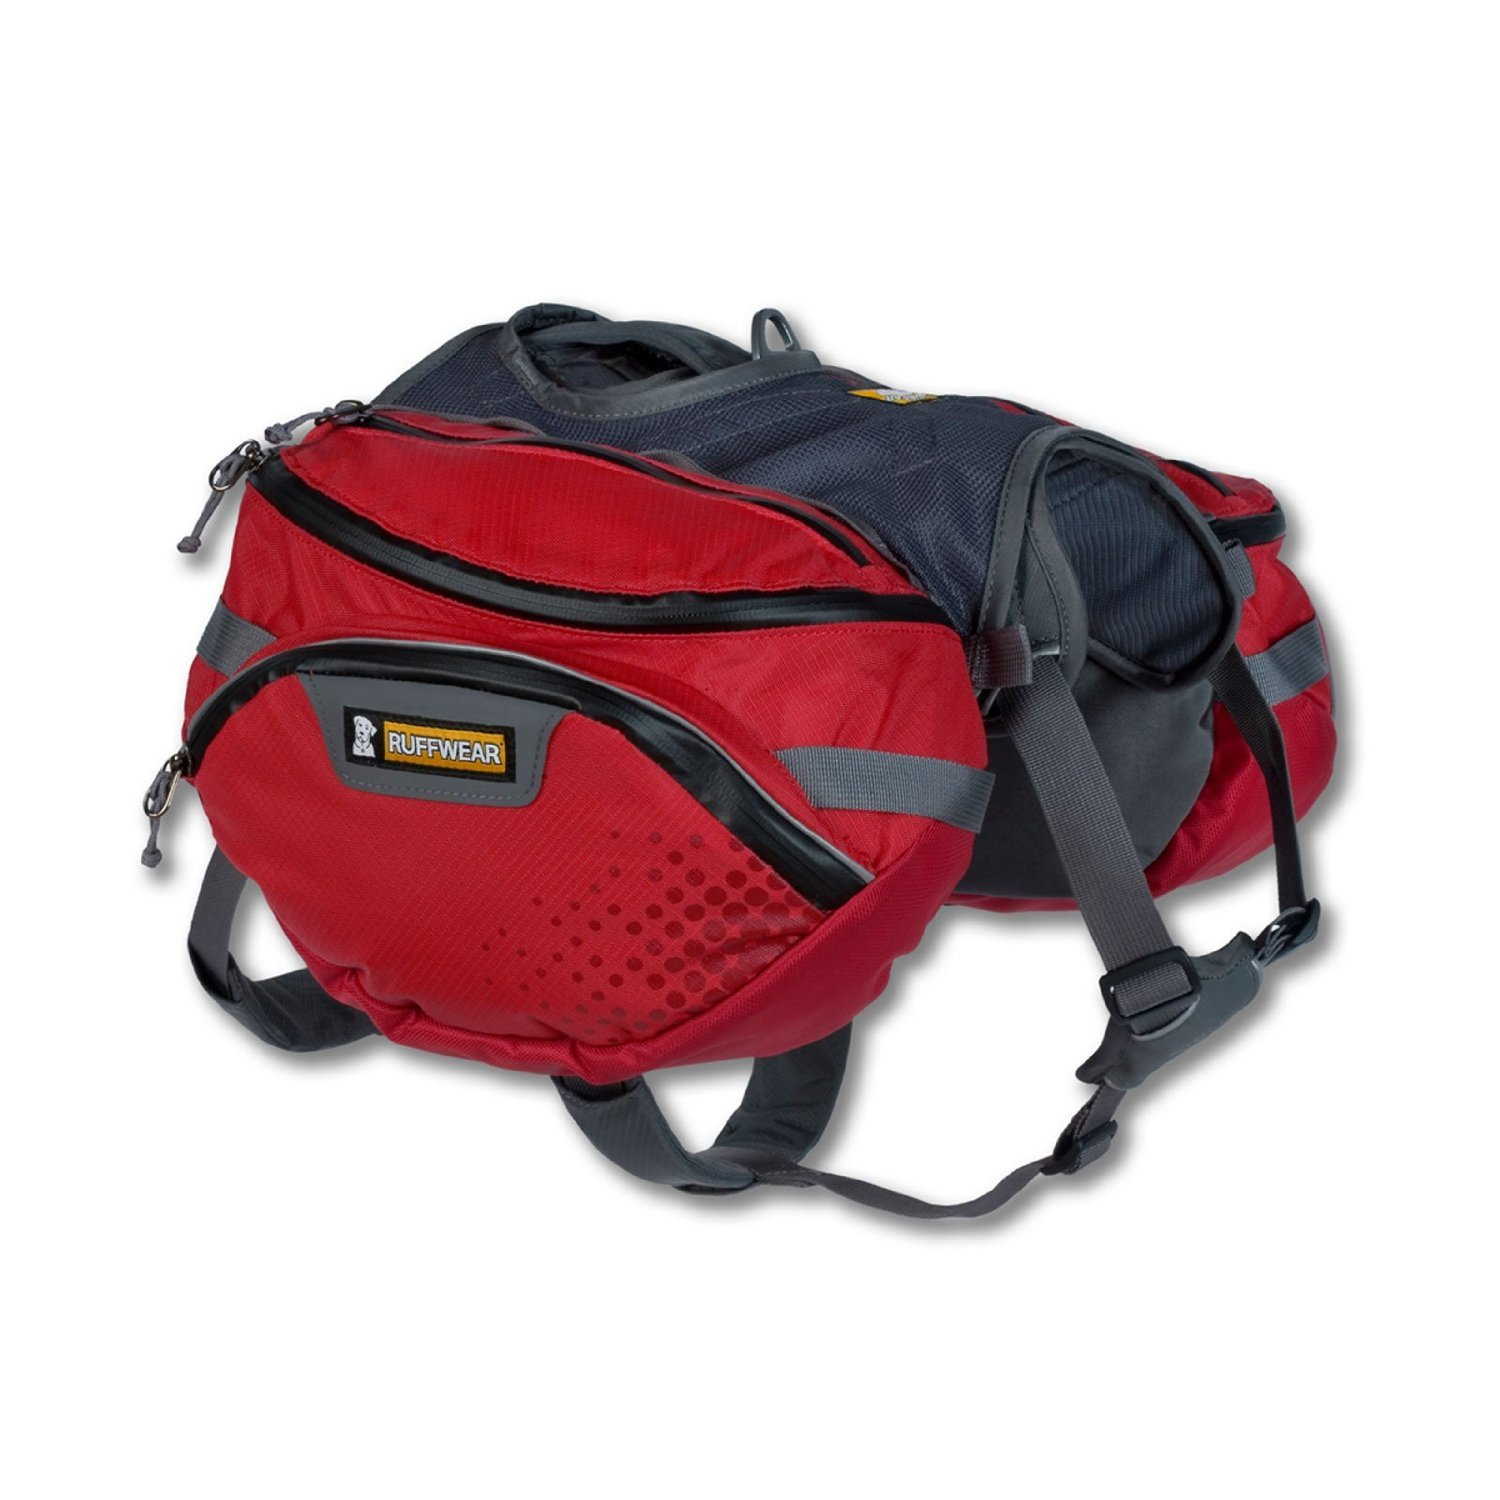 RUFFWEAR - Palisades Multi-Day Backcountry Pack for Dogs, Red Currant, Large/X-Large